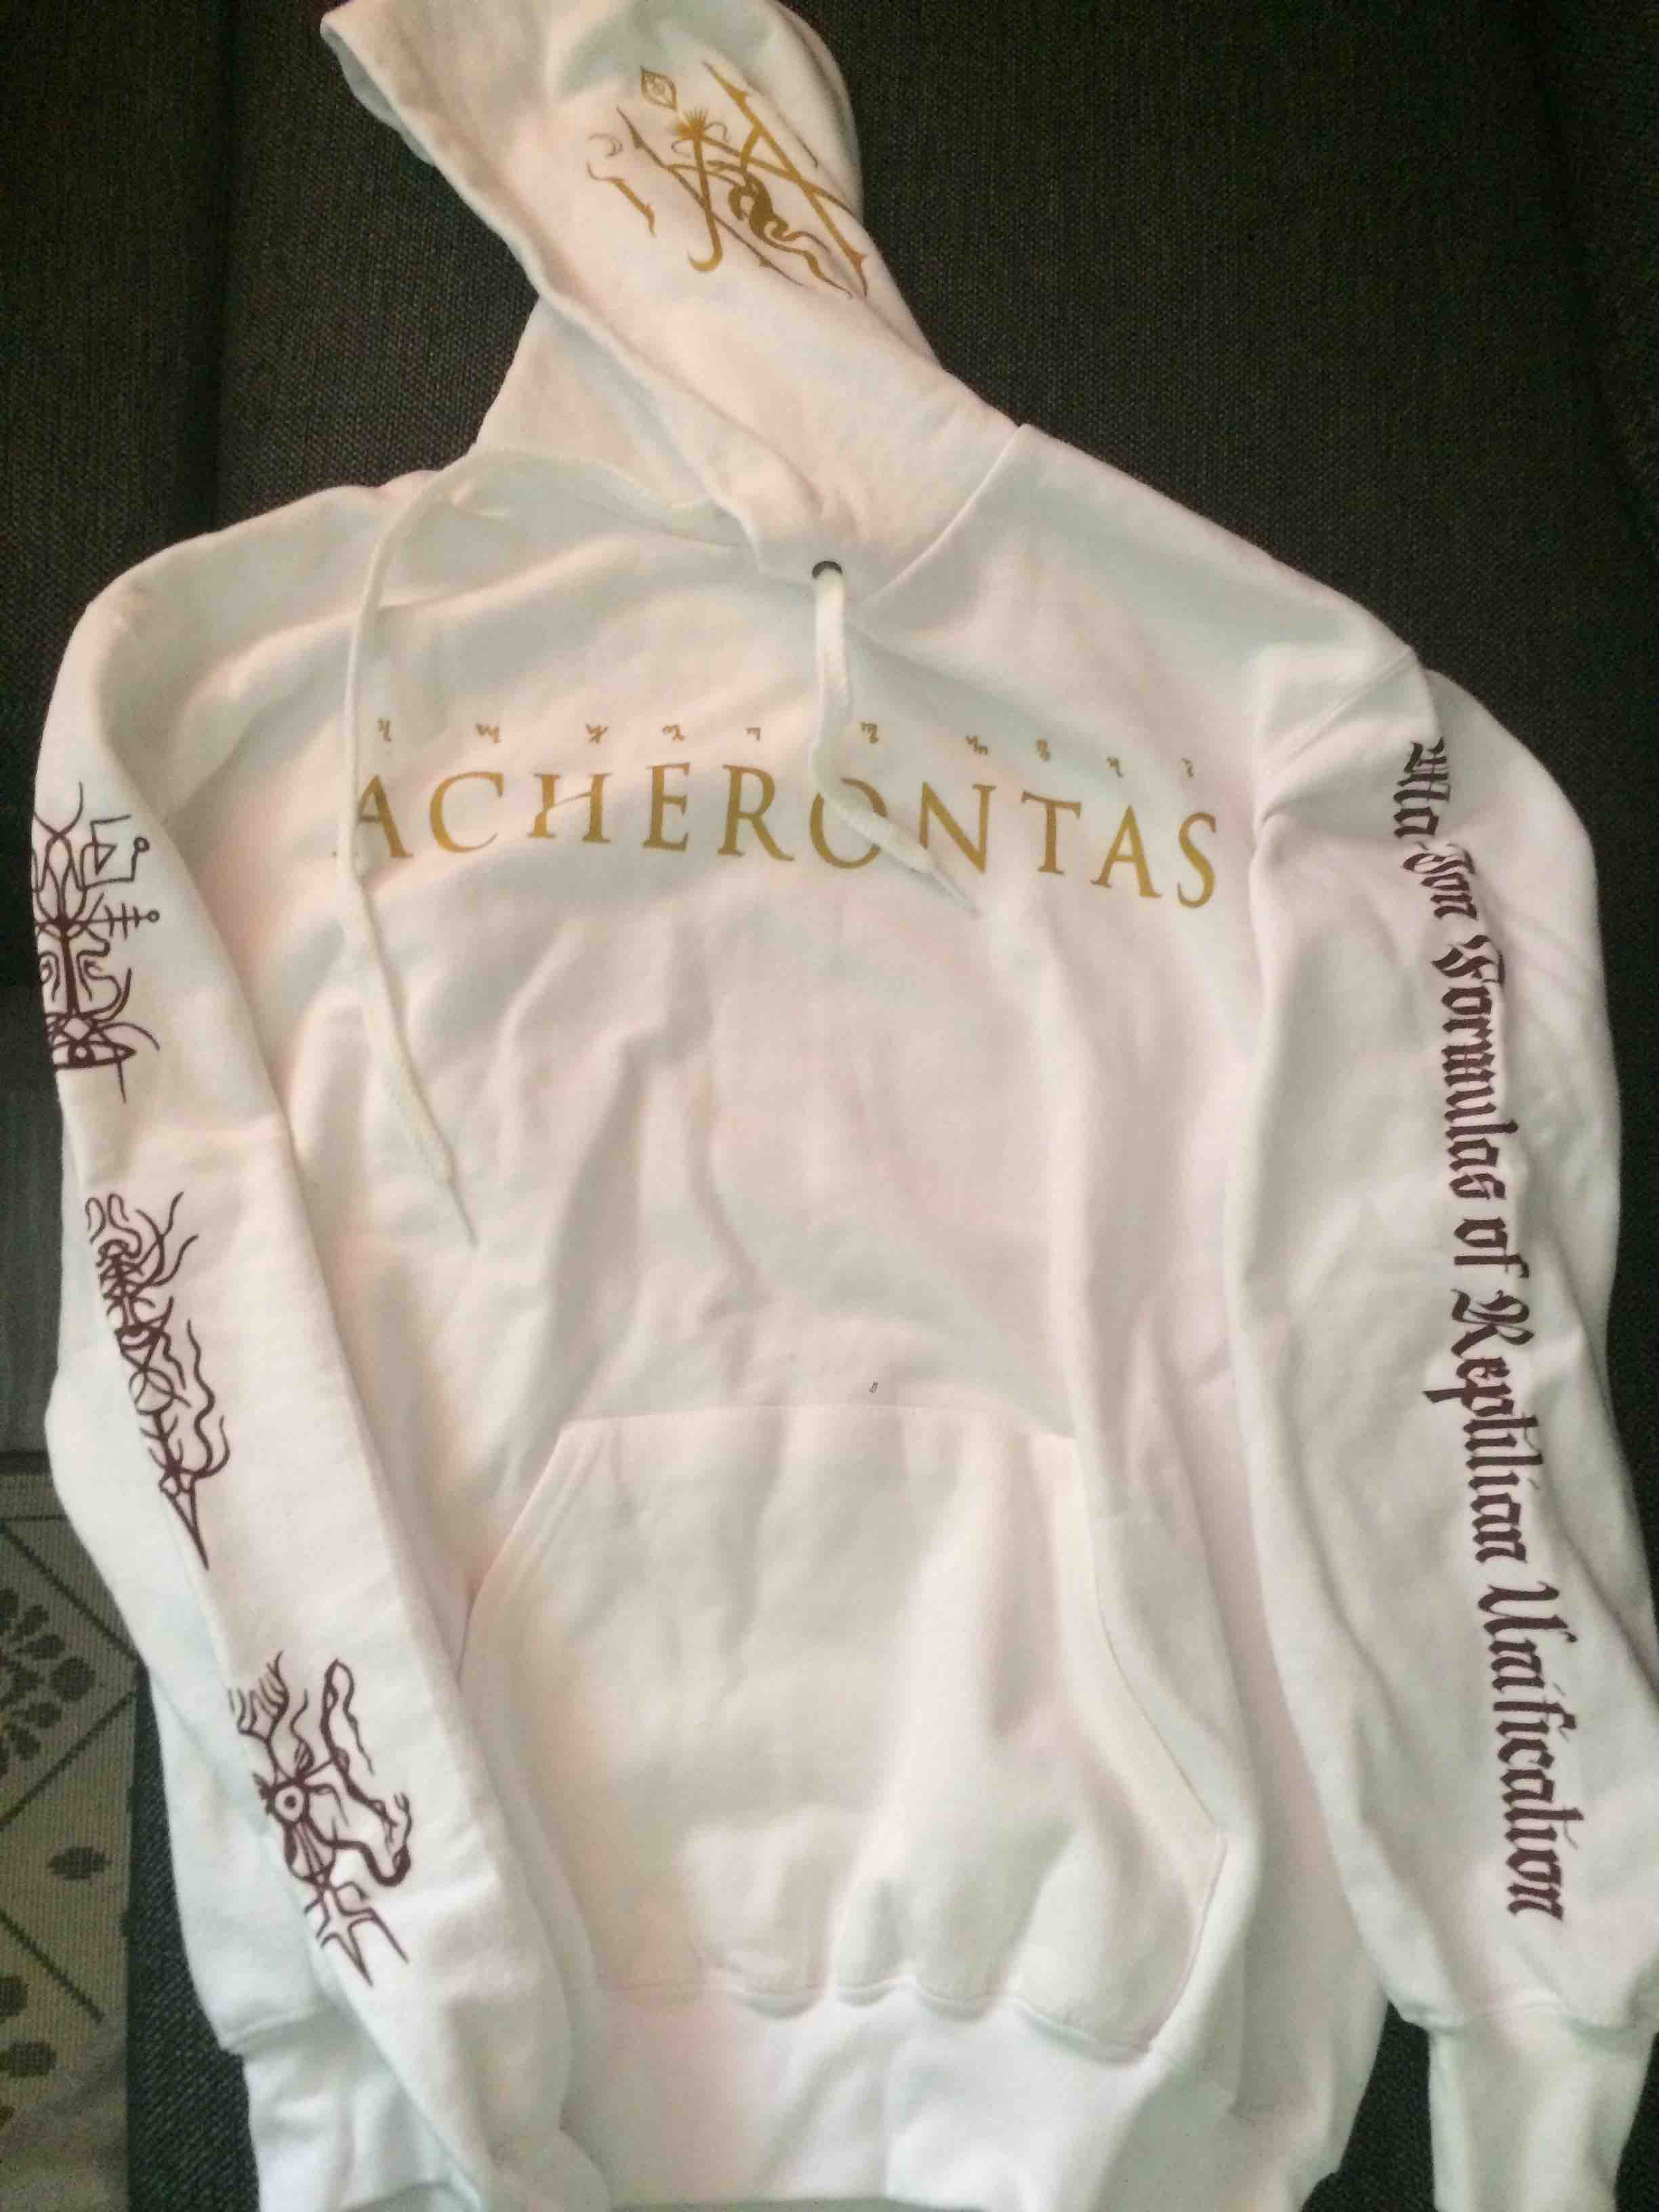 ACHERONTAS: hooded sweatshirt XXL